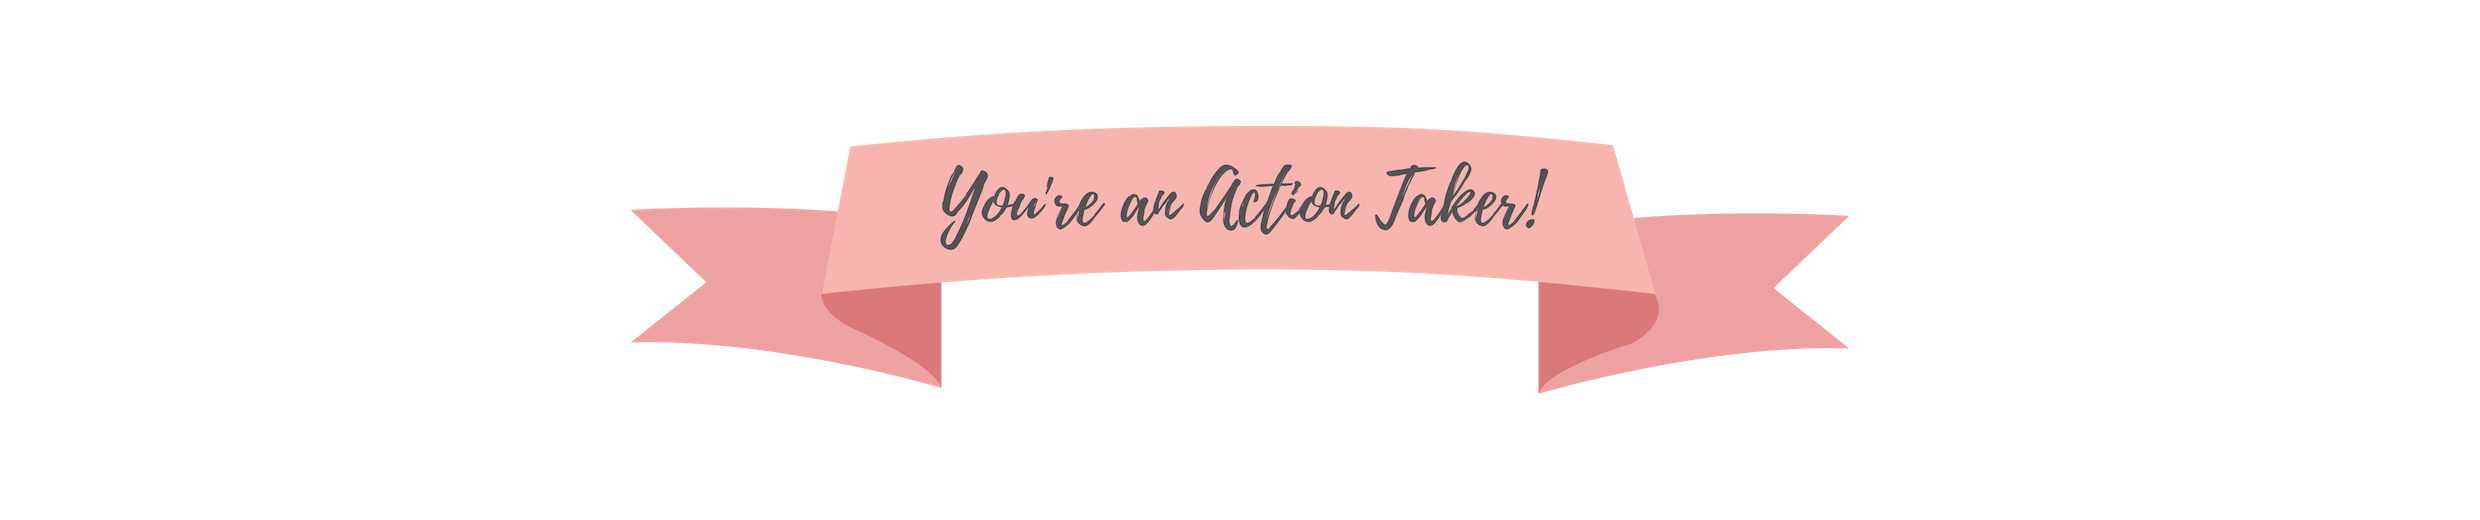 You're an Action Taker!.png